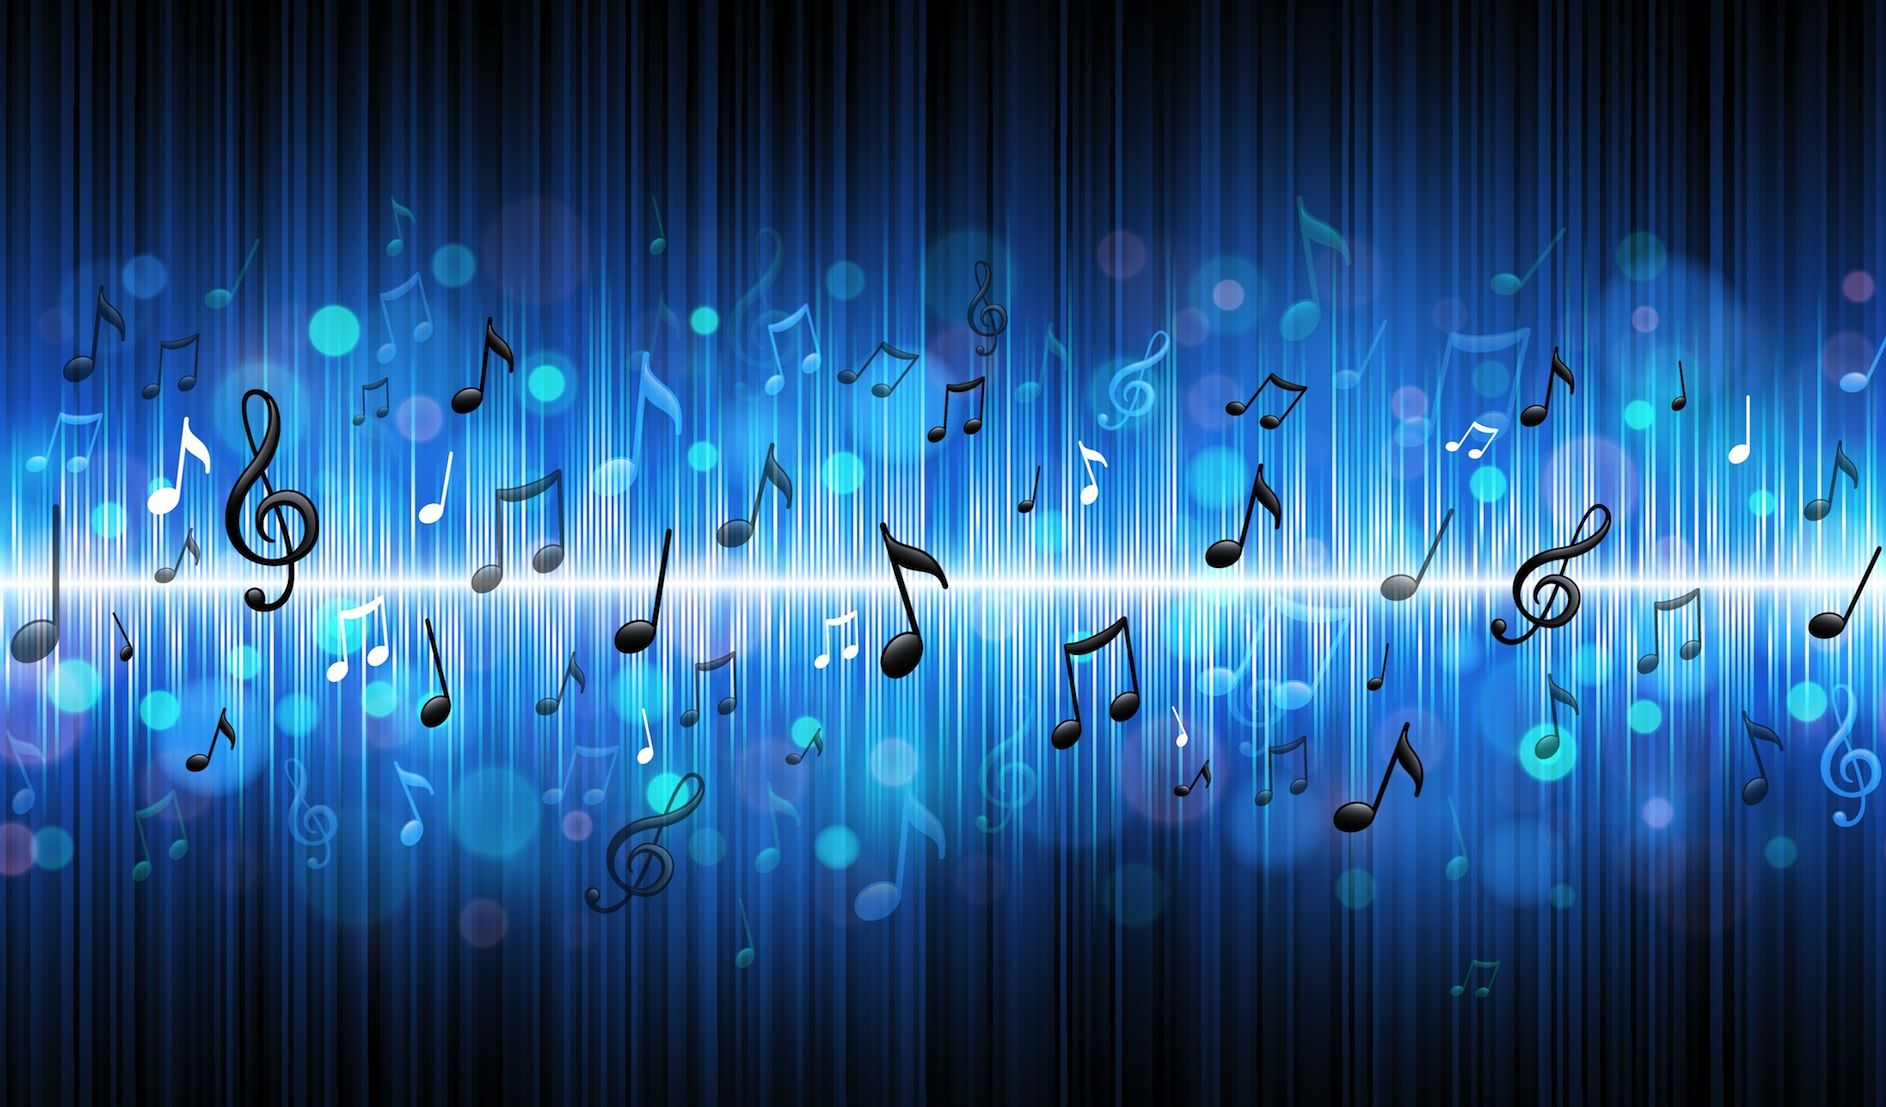 Rubens Tube With Many Different Songs Music Wallpaper Music Notes Background Music Notes